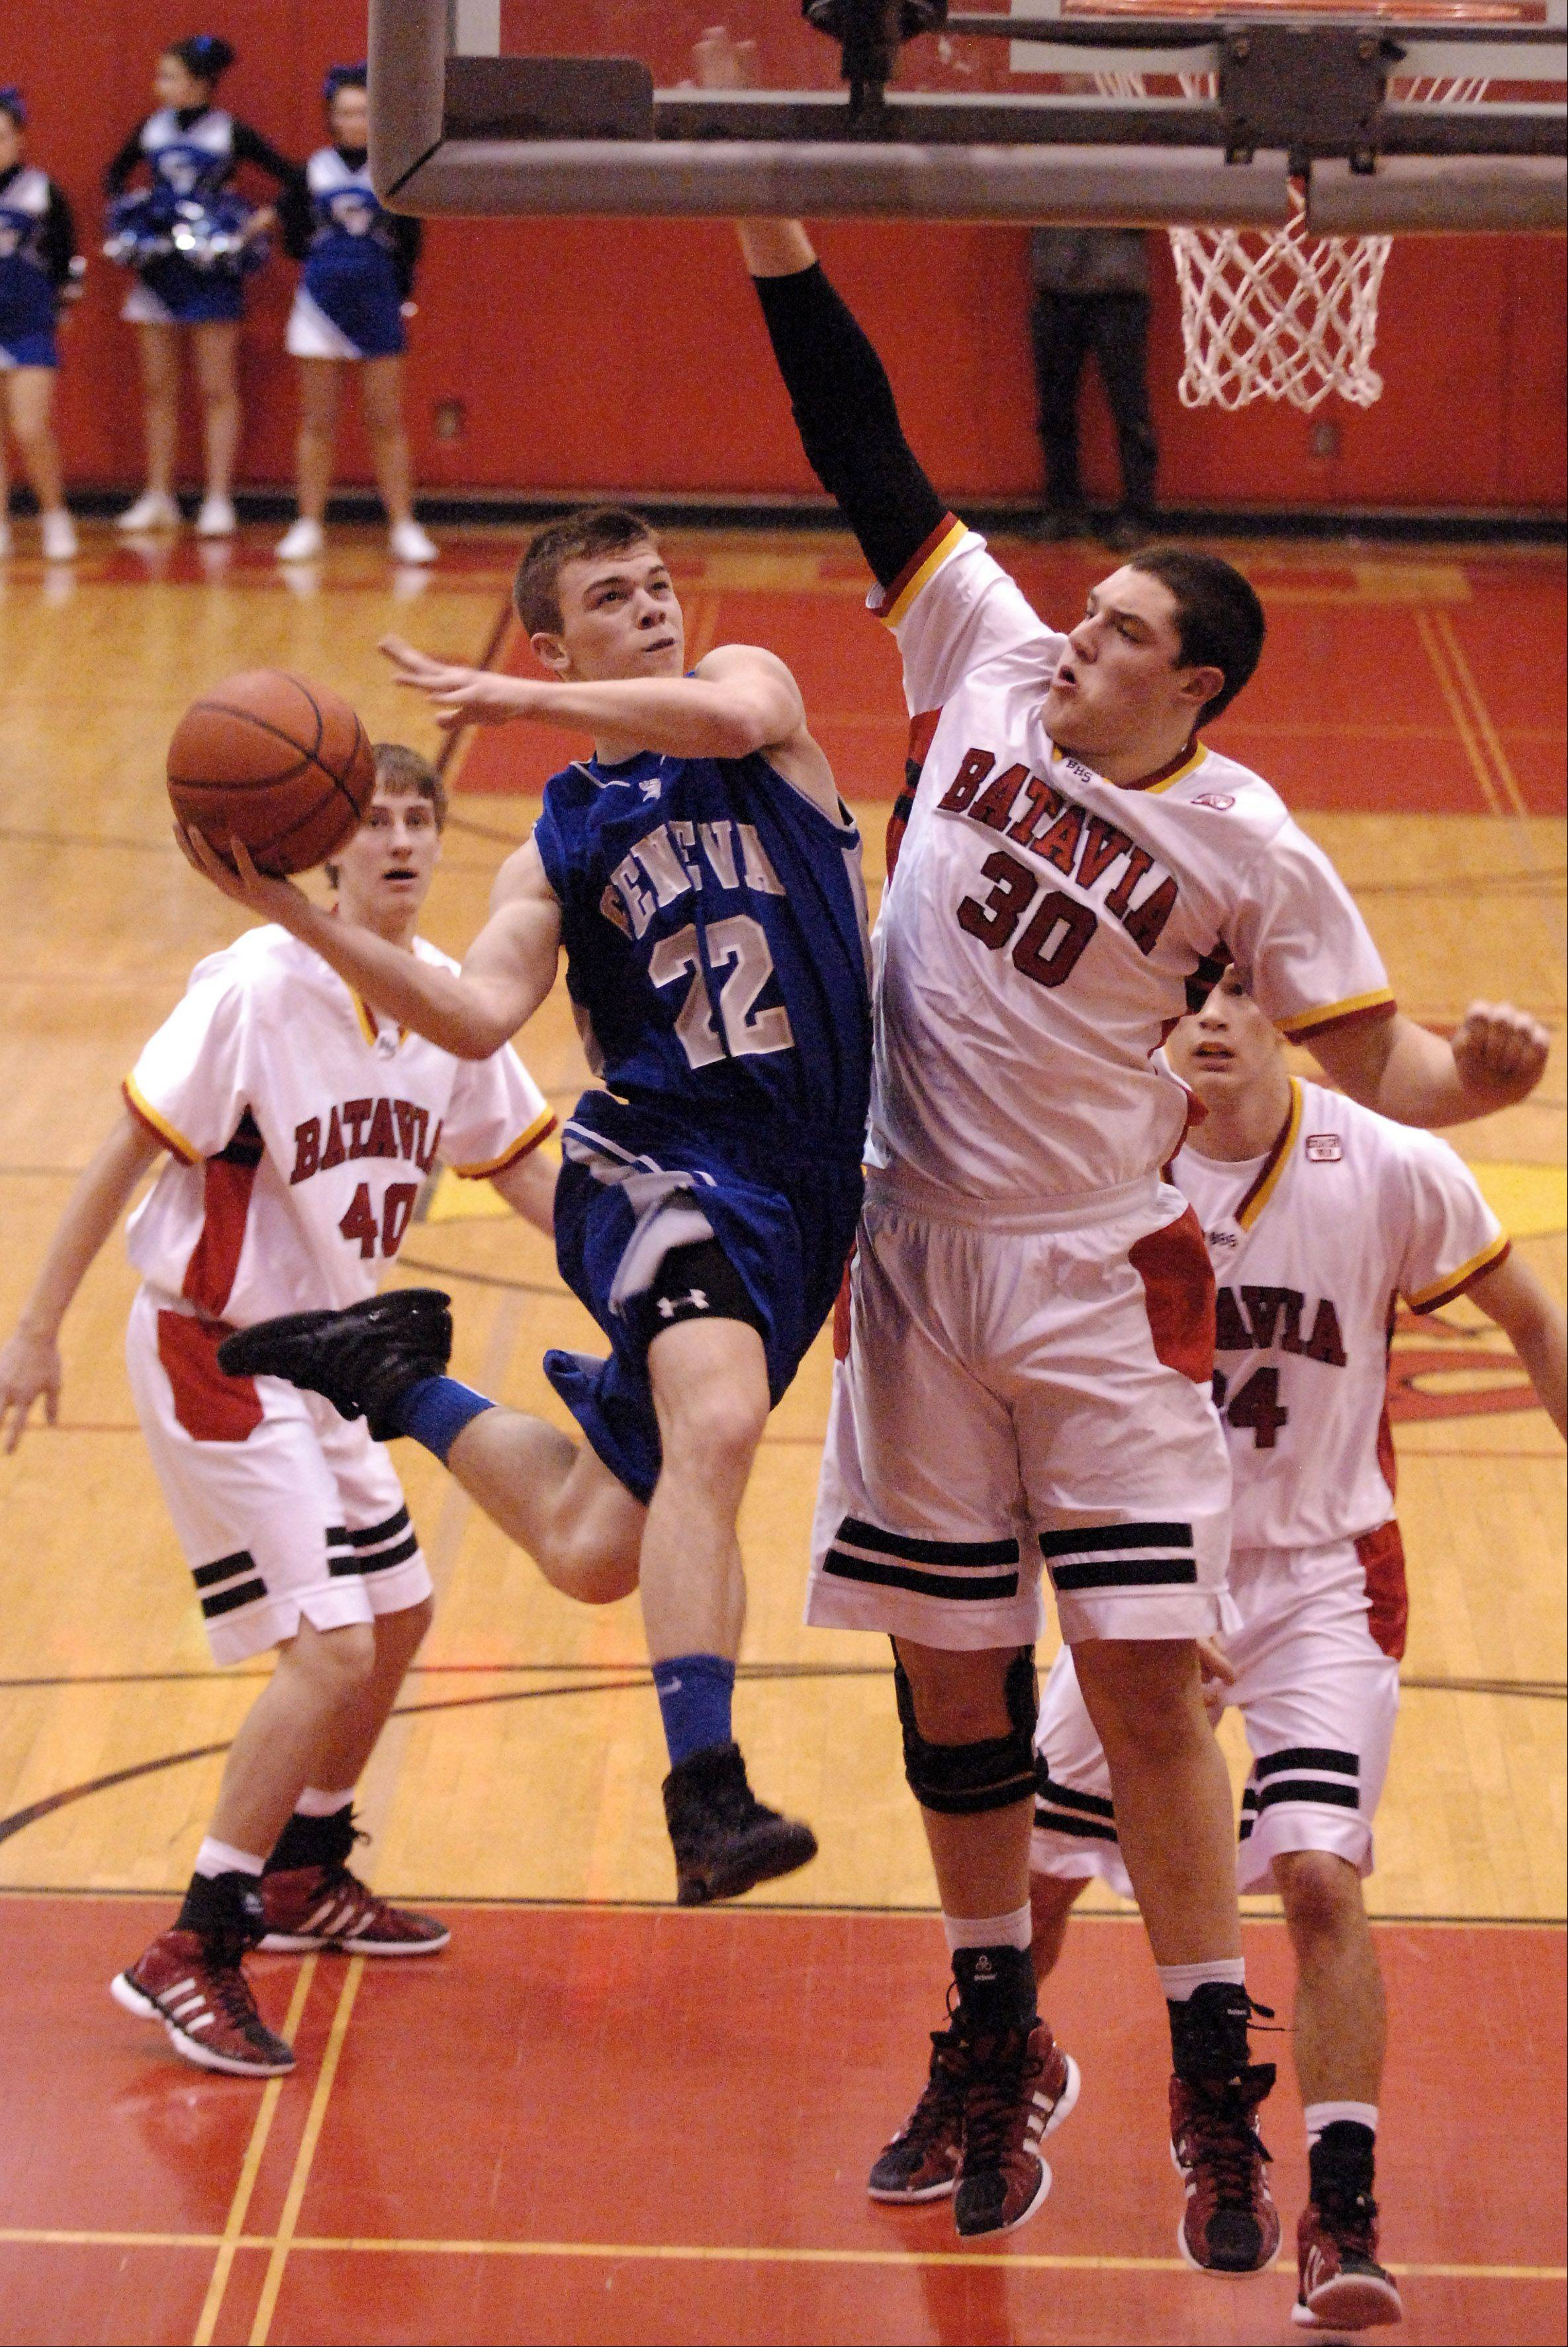 Geneva's Ryan Willing drives to the basket but is thwarted by the defense of Batavia's Cole Gardner.